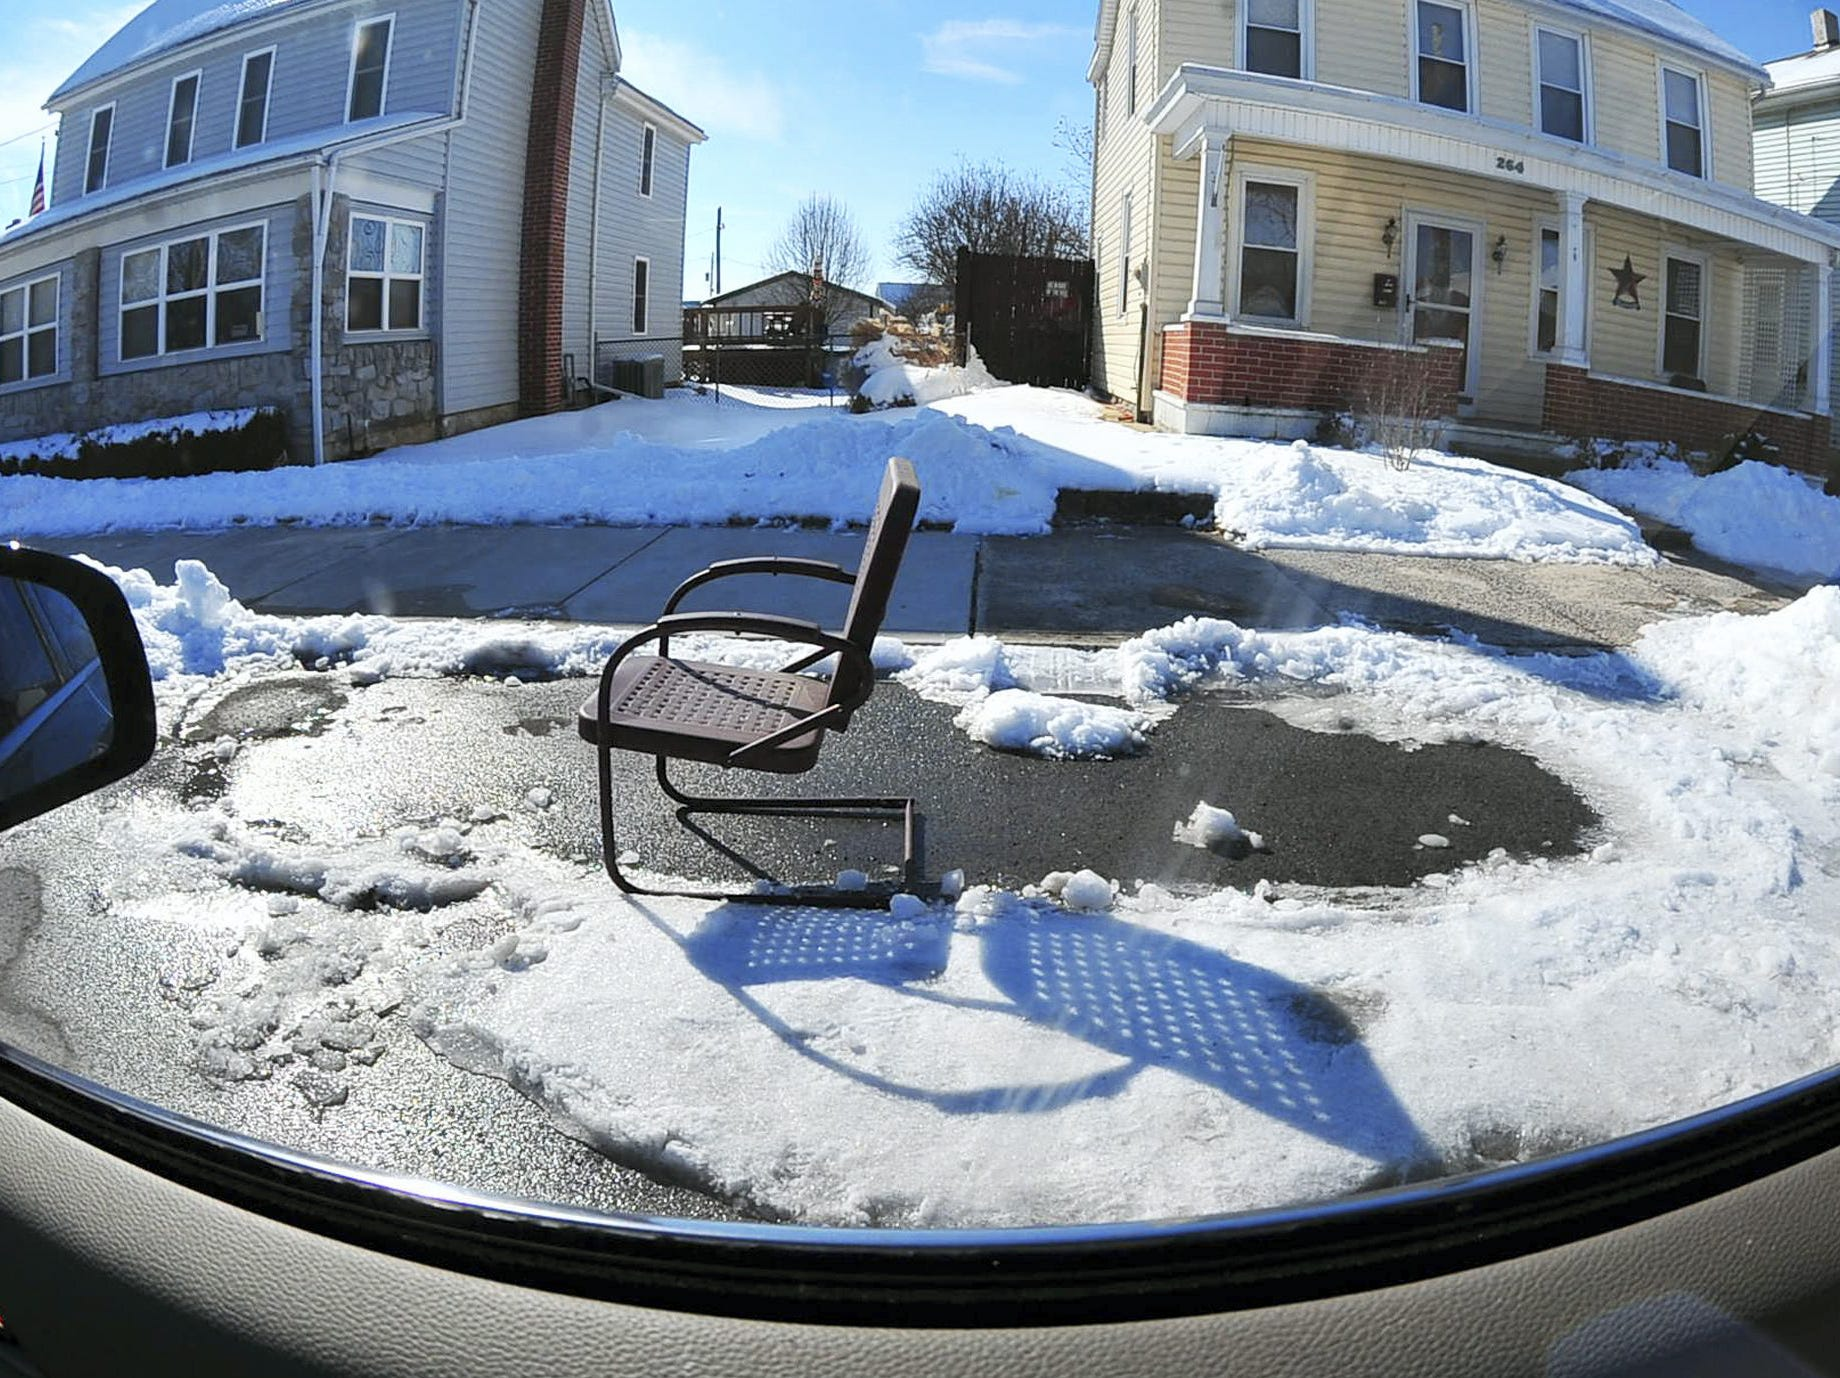 Chairs are a popular way to save a parking space - this one in Chambersburg.